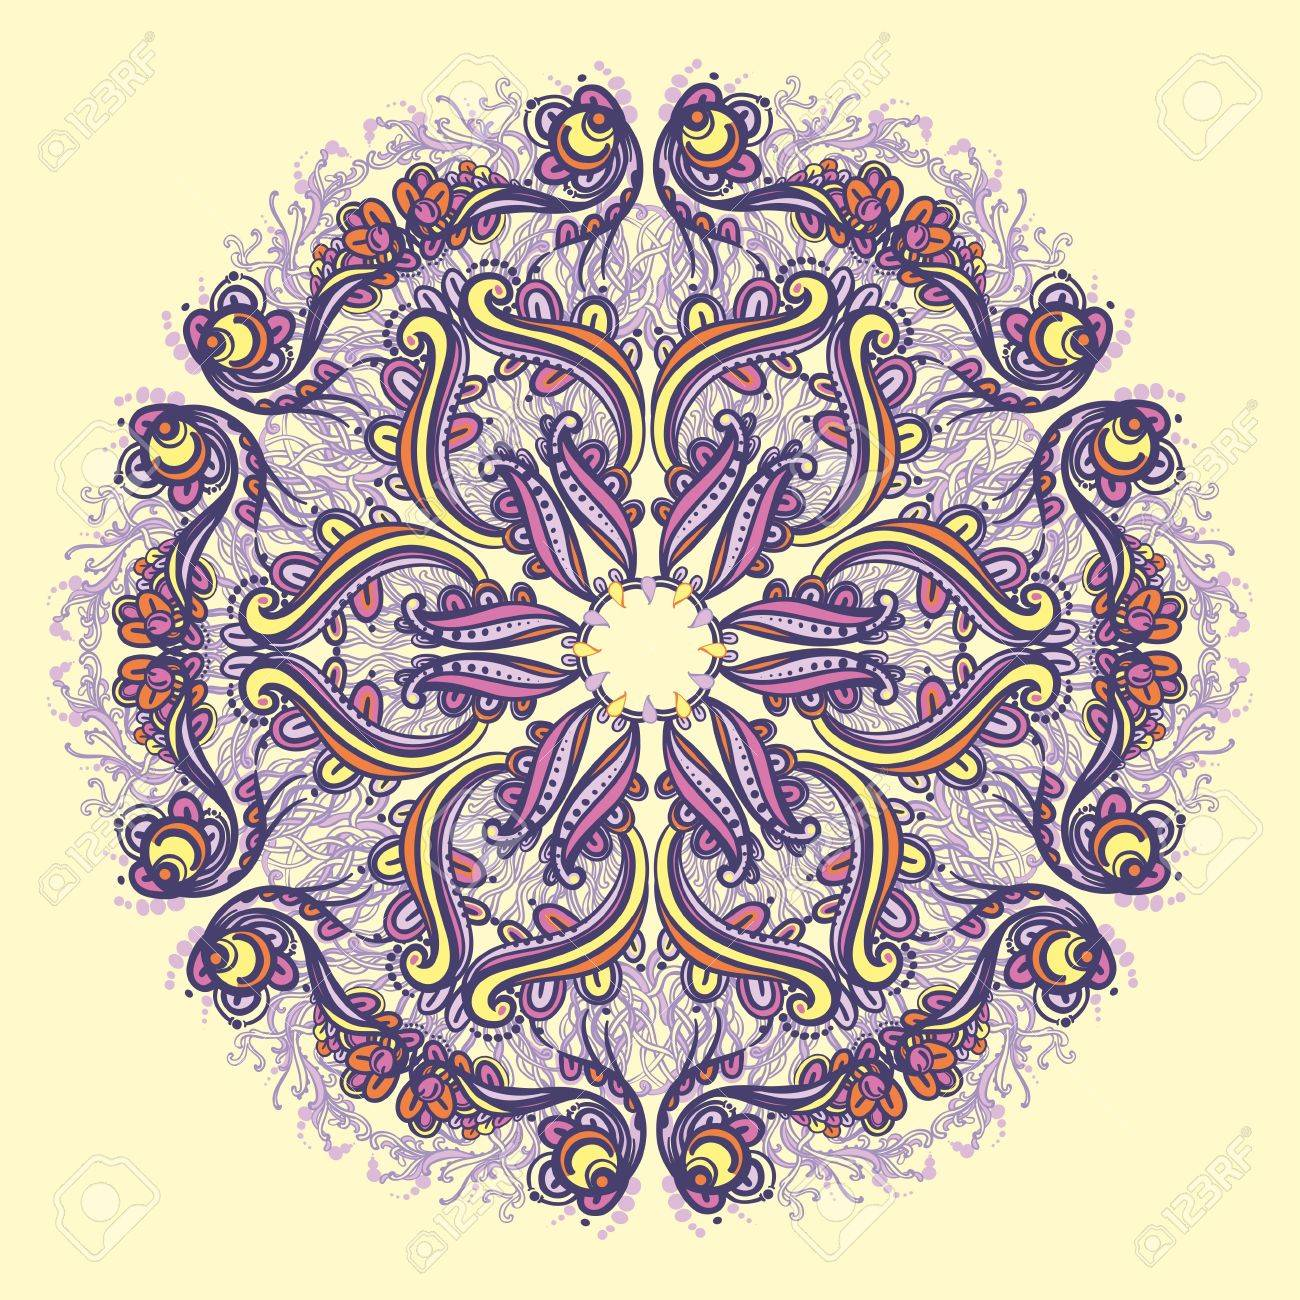 Ornamental round floral lace pattern  kaleidoscopic floral pattern, mandala Stock Vector - 14315525